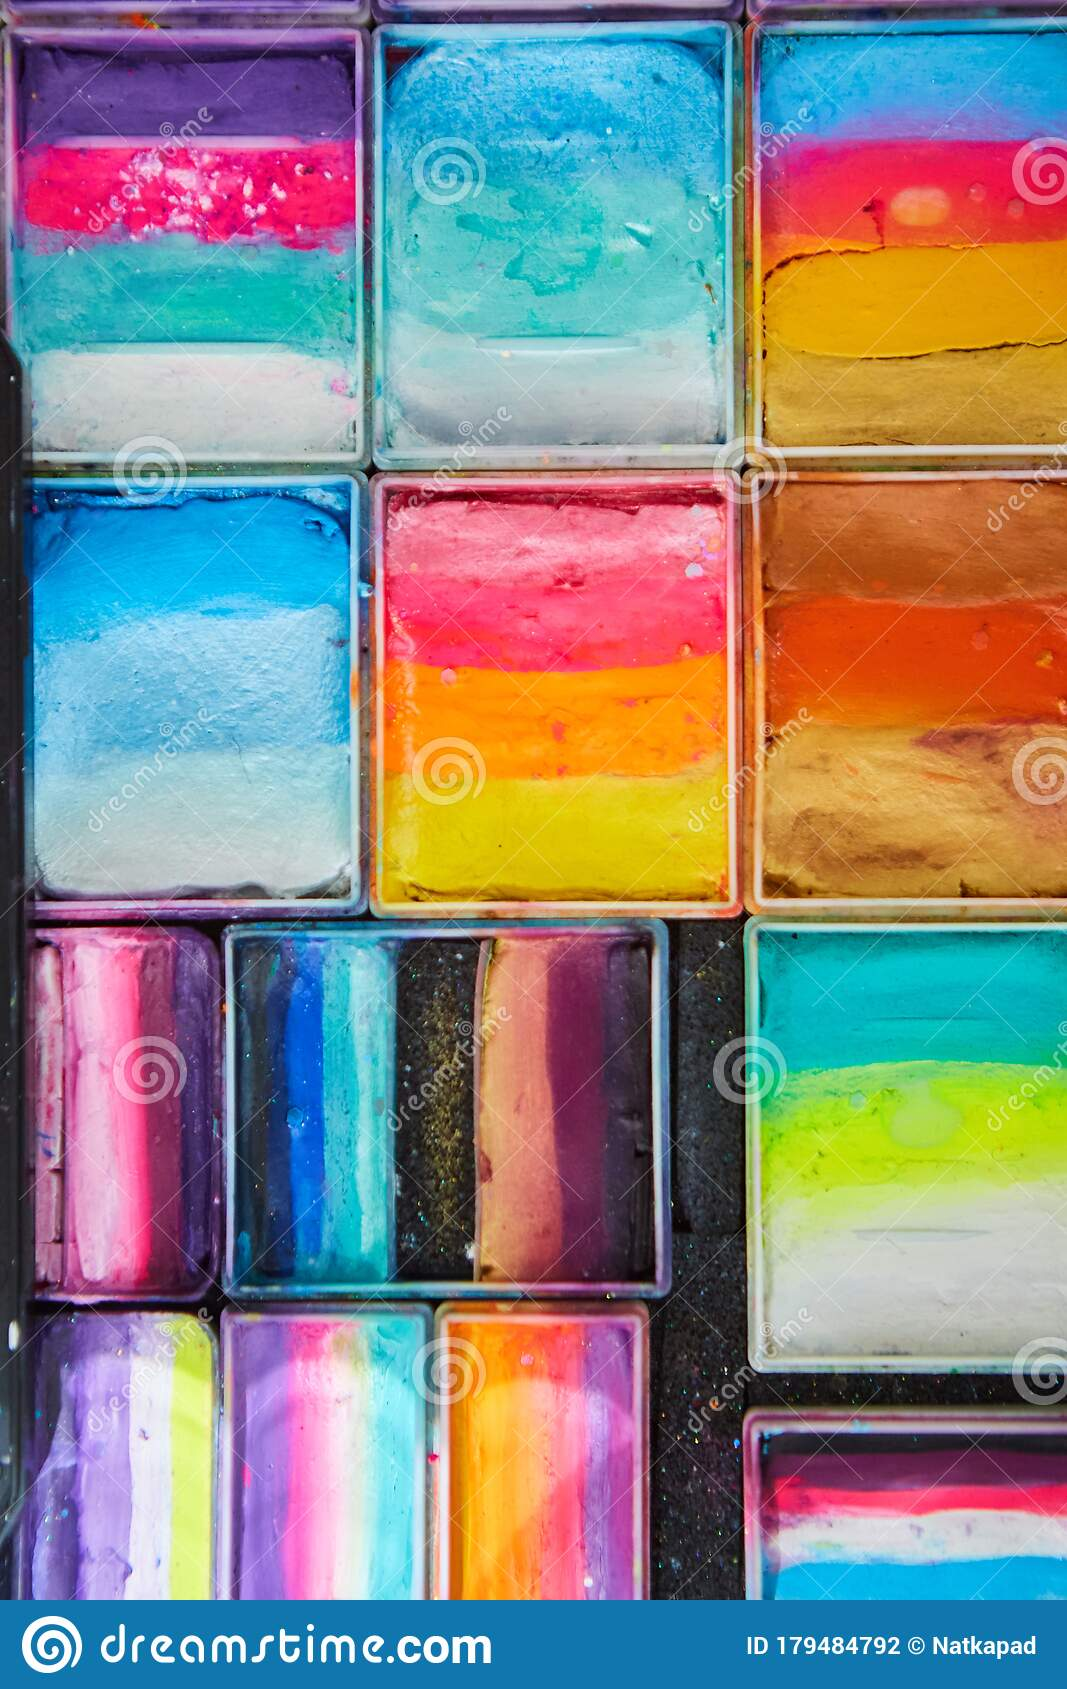 Paints For Body Art And Drawing On The Skin Stock Photo Image Of Painting White 179484792